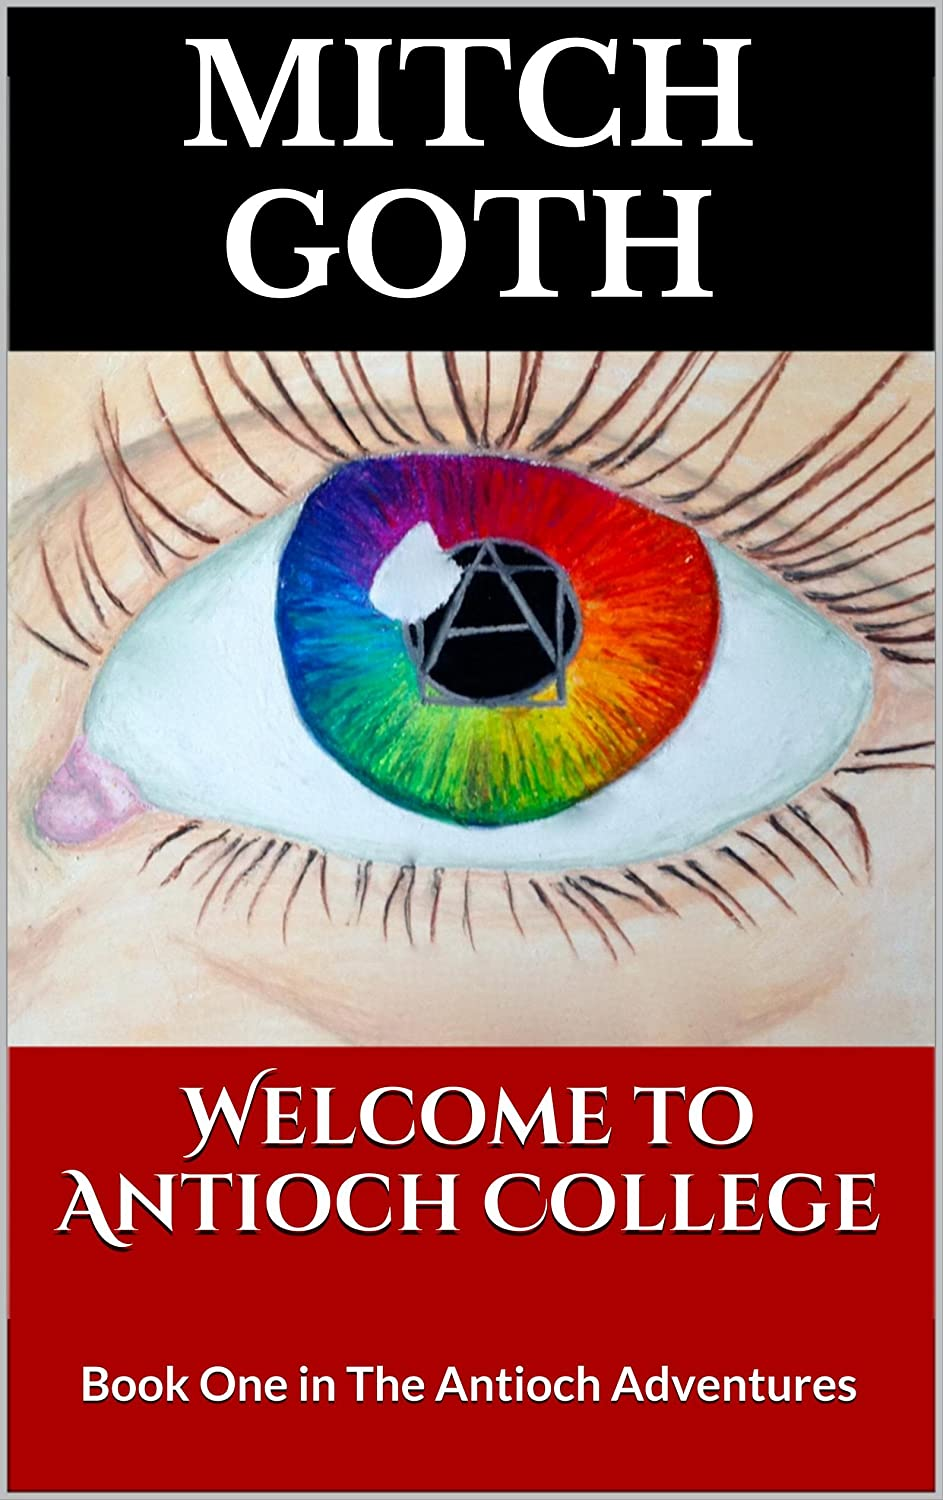 Welcome to Antioch College: Book One of The Antioch Adventures (The Antioch Adventures Serial 1) by Mitch Goth